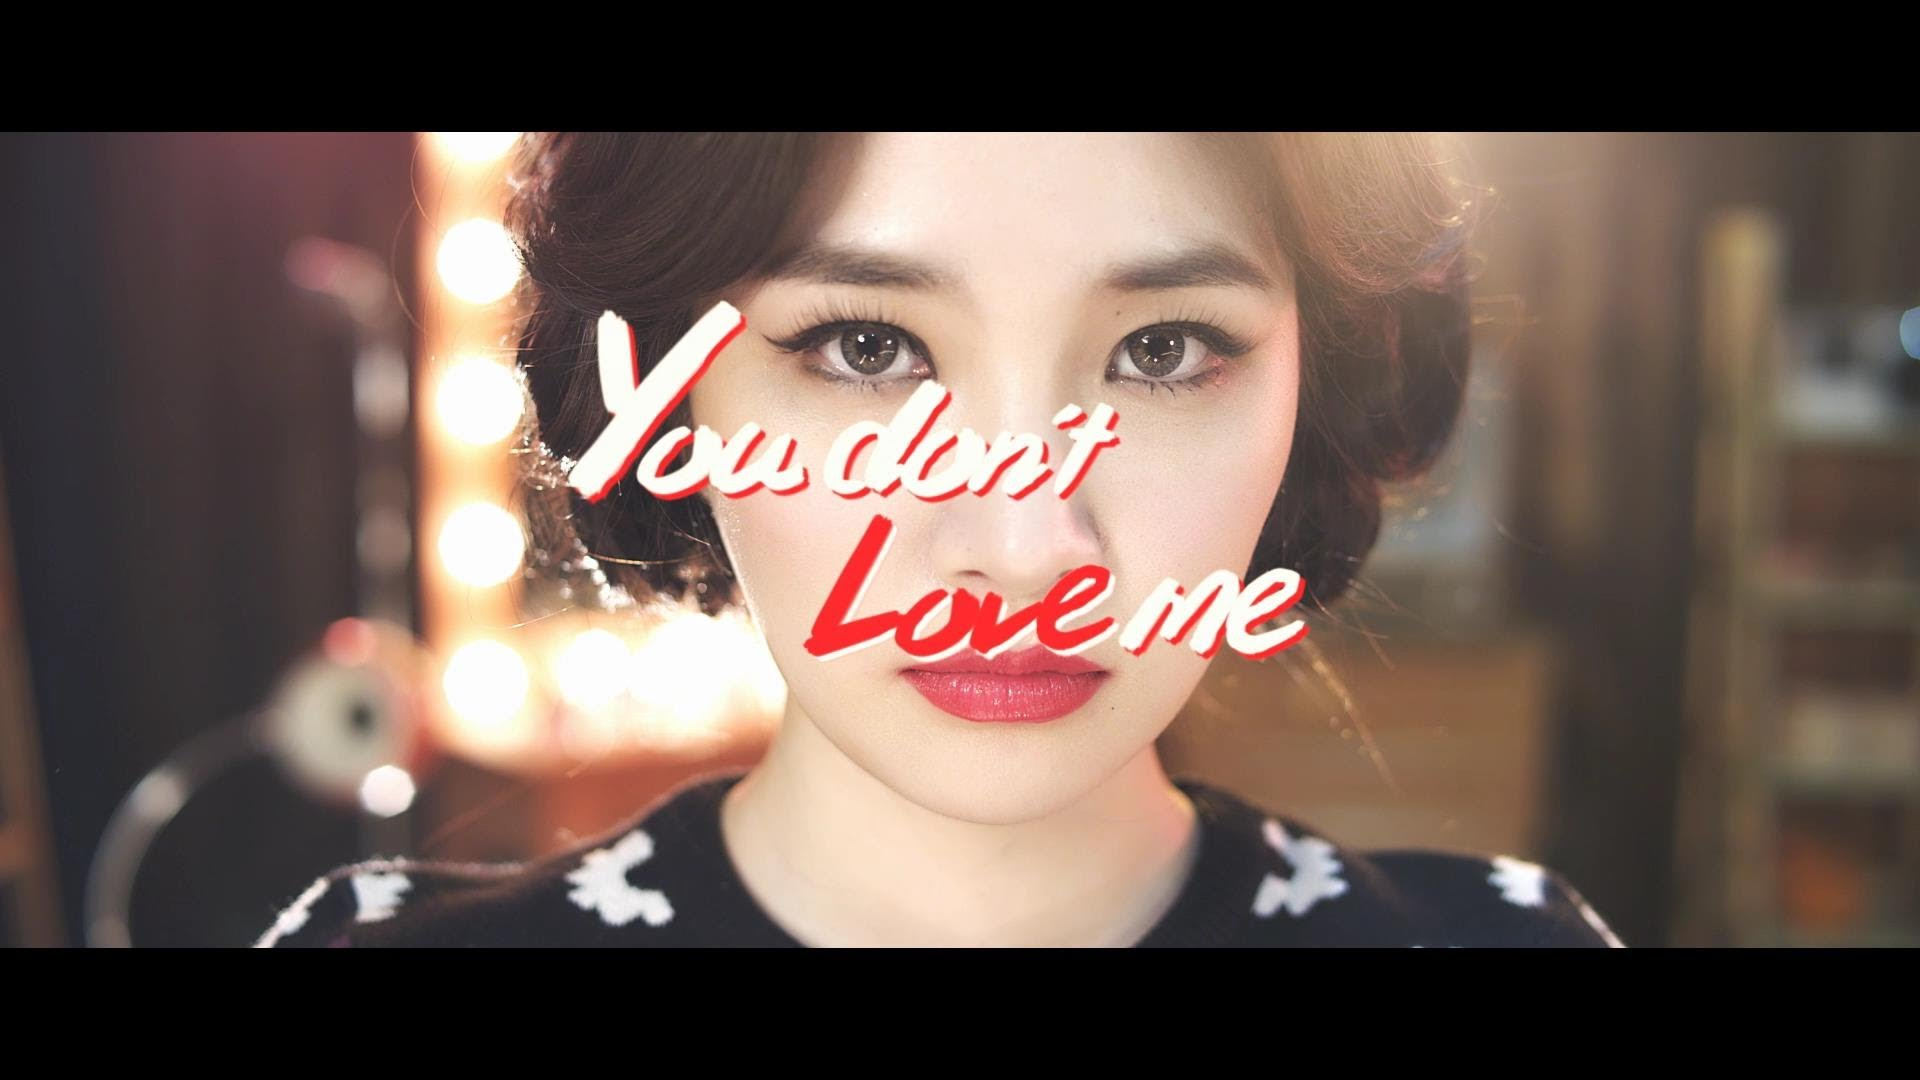 SPICA(스피카) - You Don't Love Me Music Video - YouTube